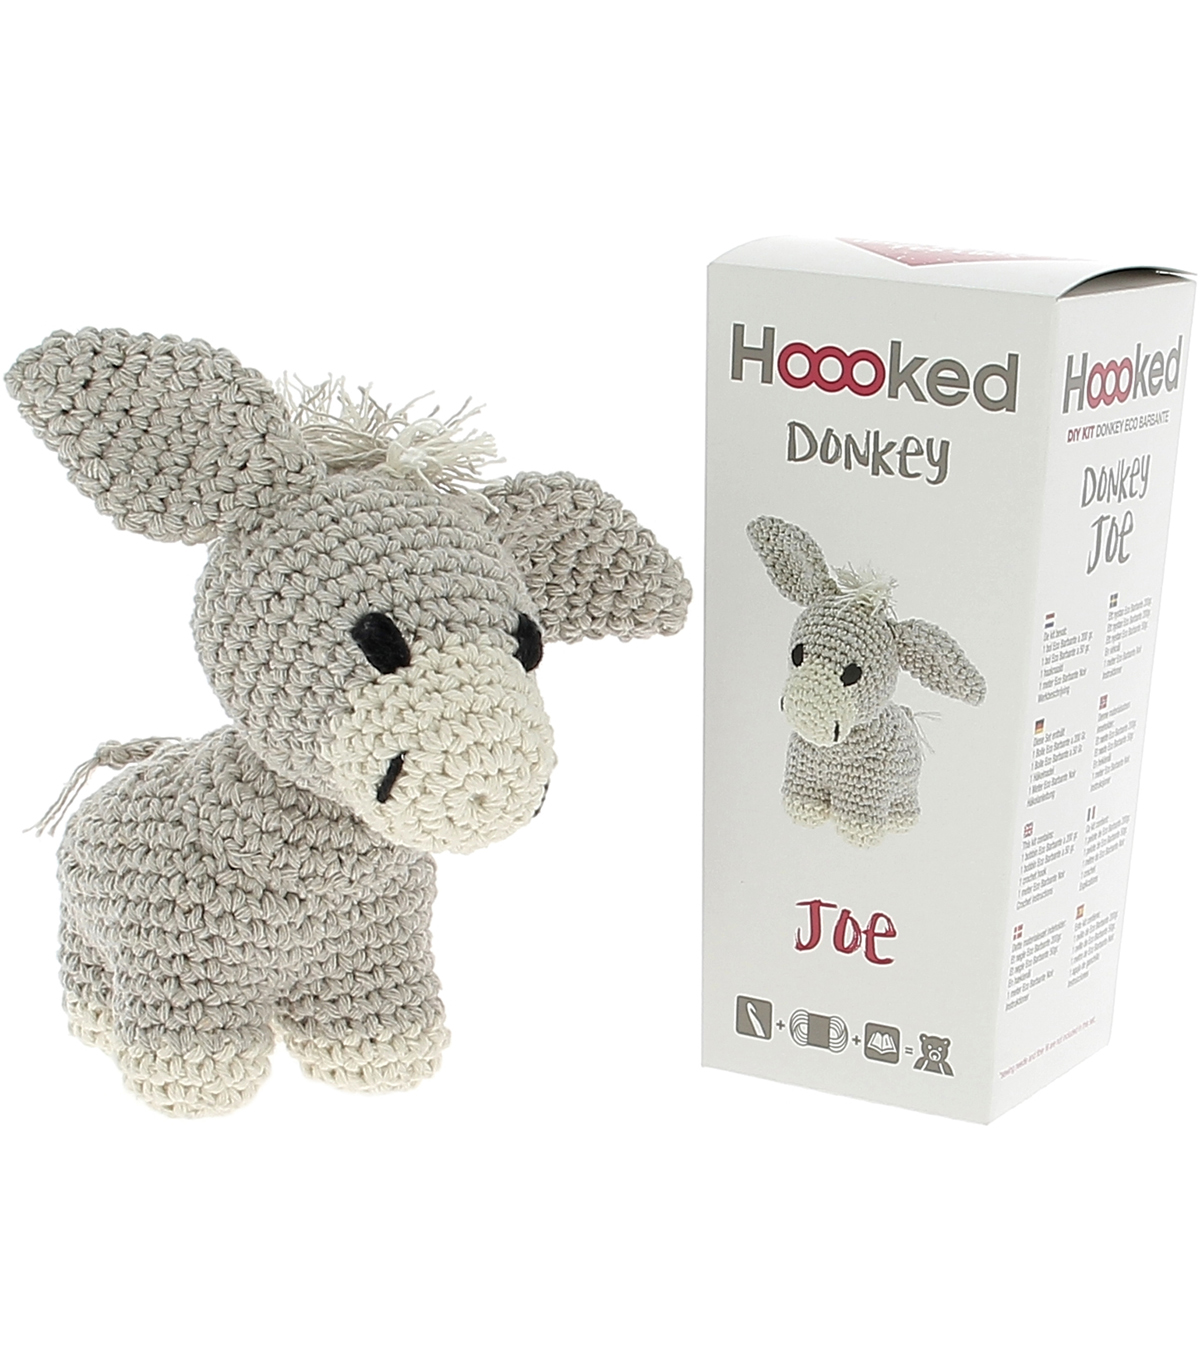 Hoooked Eco Barbante Donkey Joe DIY Crochet kit-Biscuit